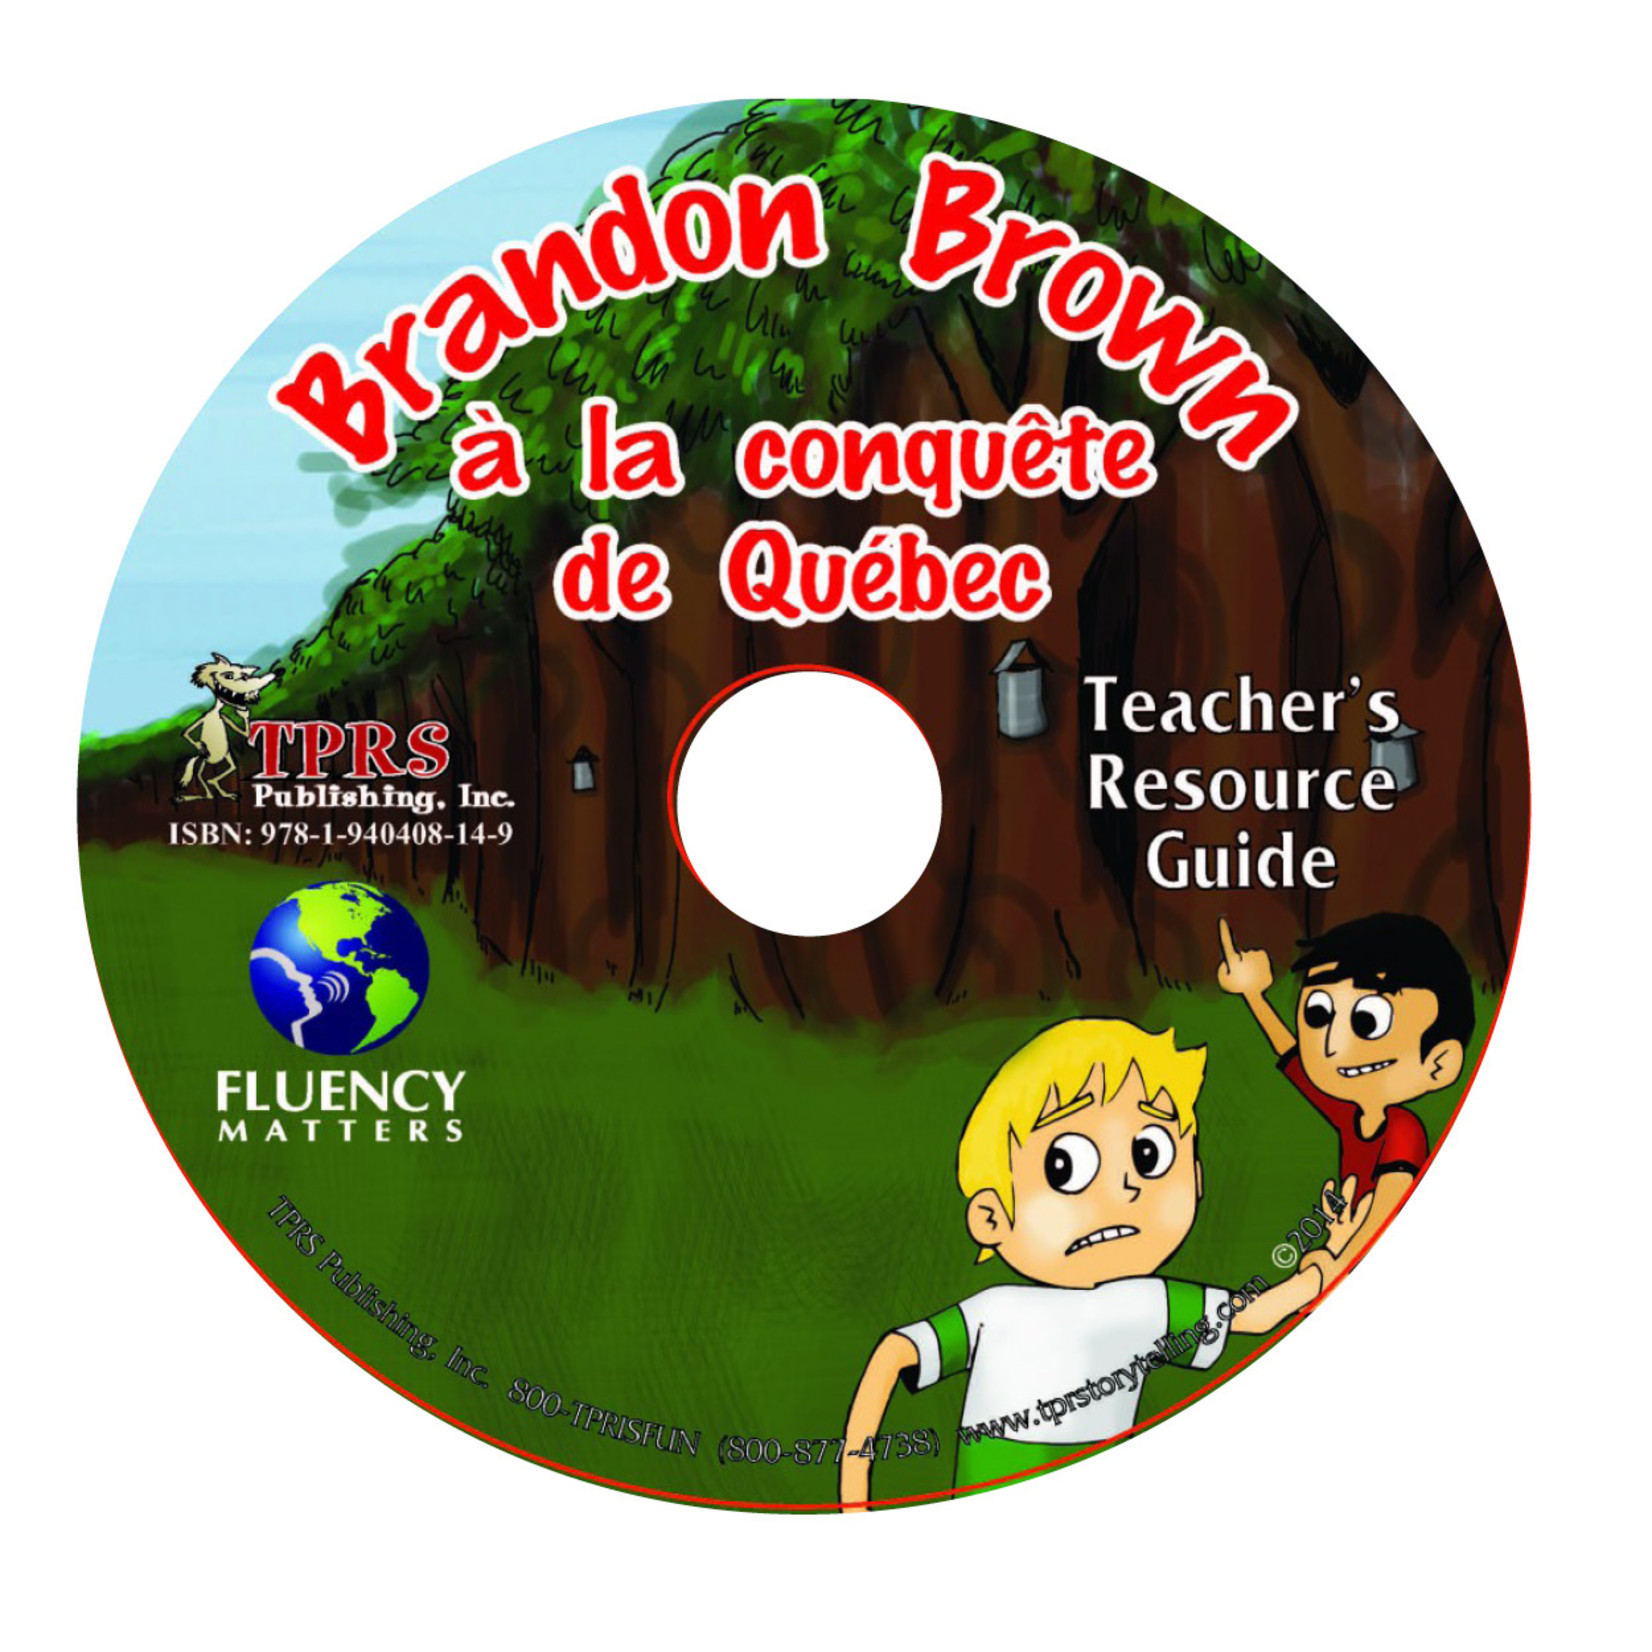 Fluency Matters Brandon Brown à la conquête de Québec  - Teacher's Guide on CD